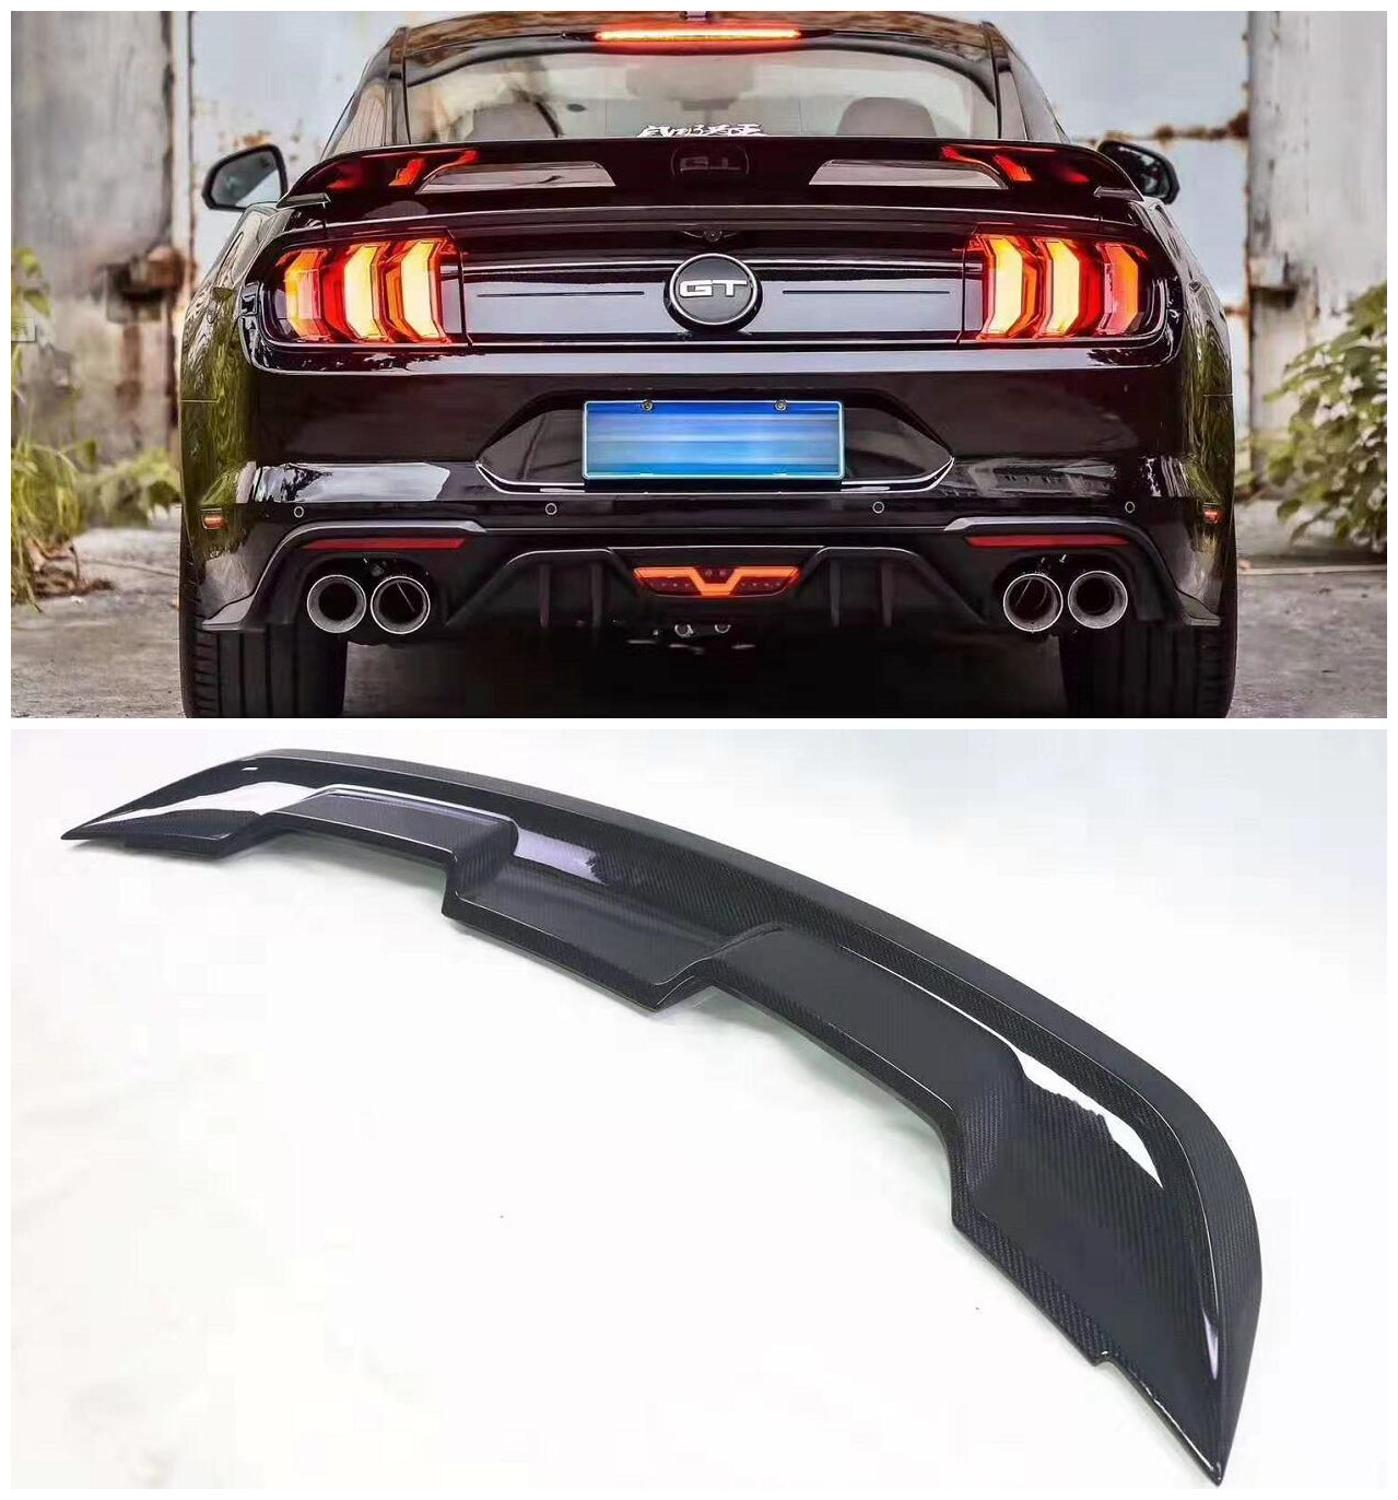 Carbon Fiber Car Rear Wing Trunk Lip <font><b>Spoilers</b></font> Fits For Ford <font><b>Mustang</b></font> <font><b>2015</b></font> 2016 2017 2018 2019 image